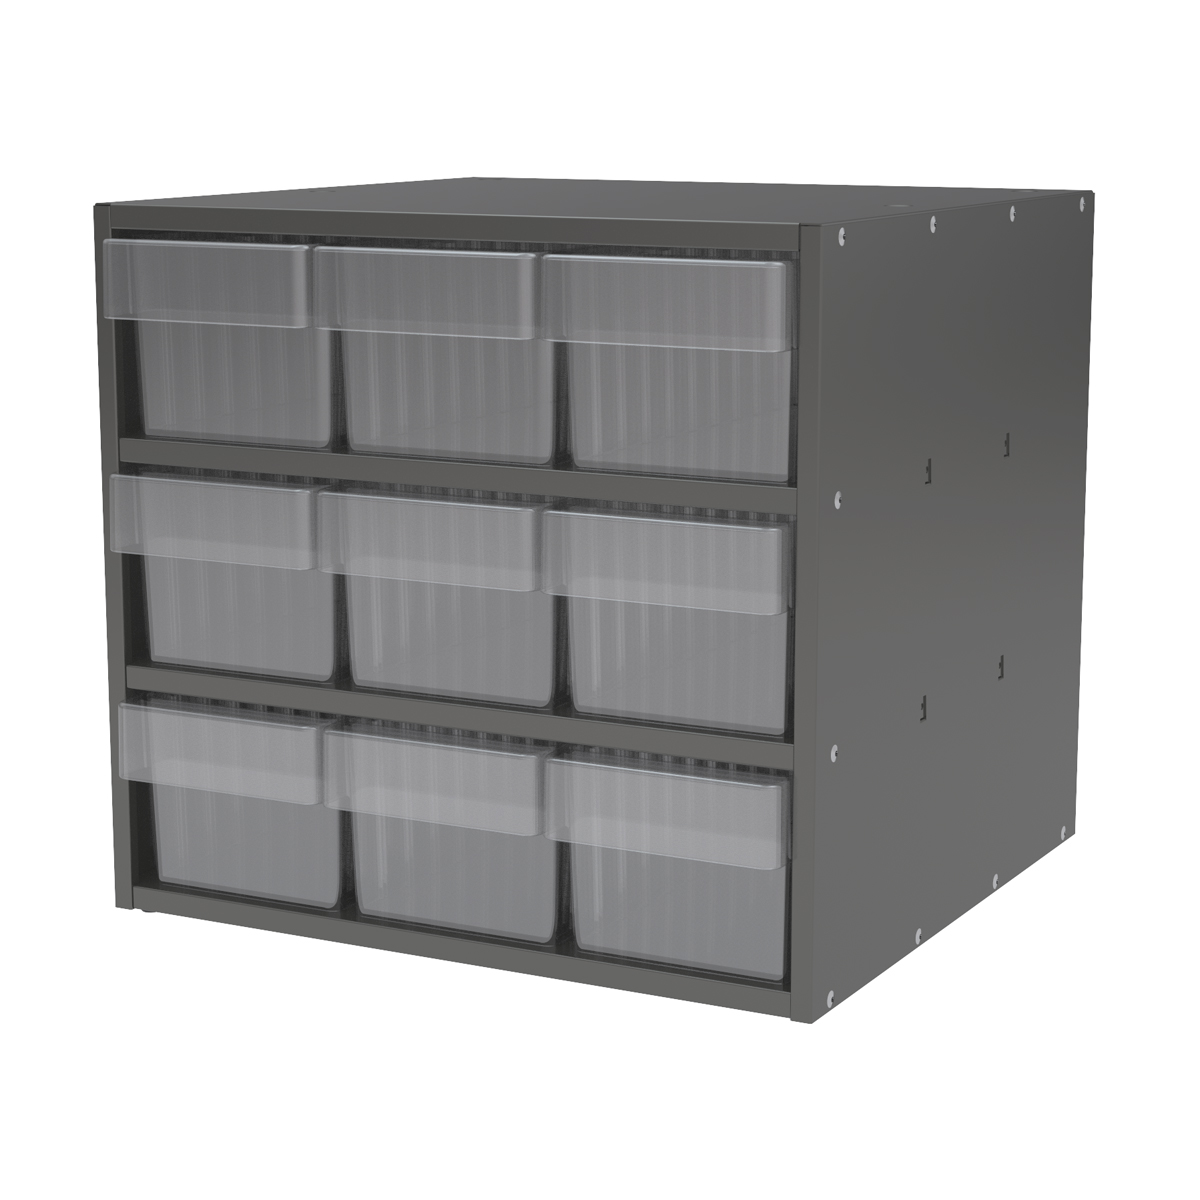 Item DISCONTINUED by Manufacturer.  Modular Cabinet, 18x17x16, 9 Drawers, Gray/Clear (AD1817C68CRY).  This item sold in carton quantities of 1.